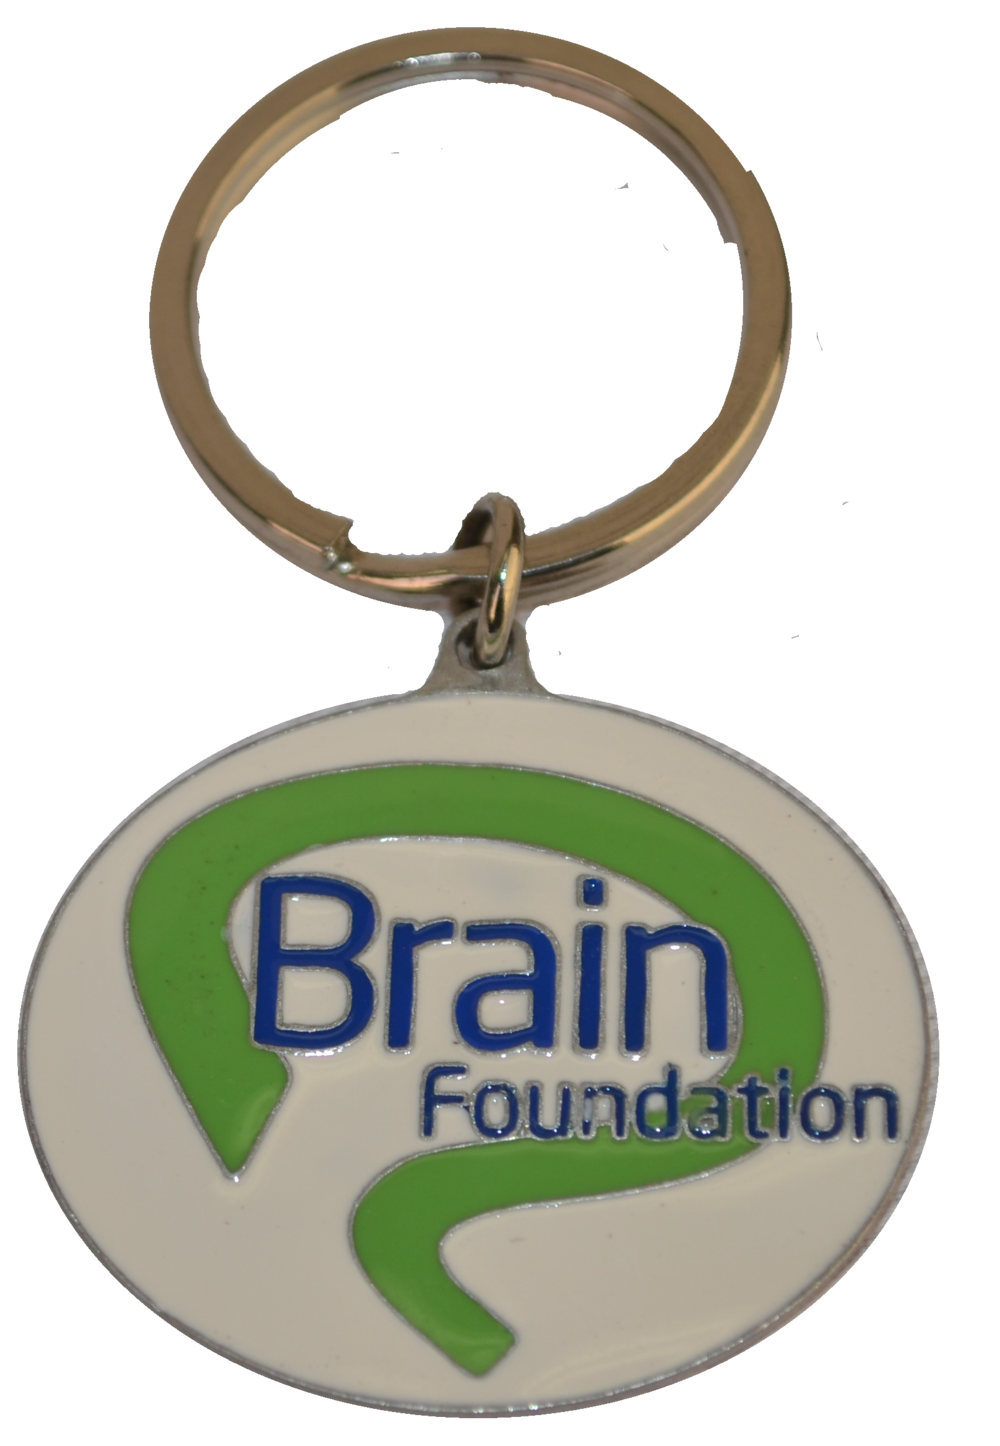 Brain Foundation.png